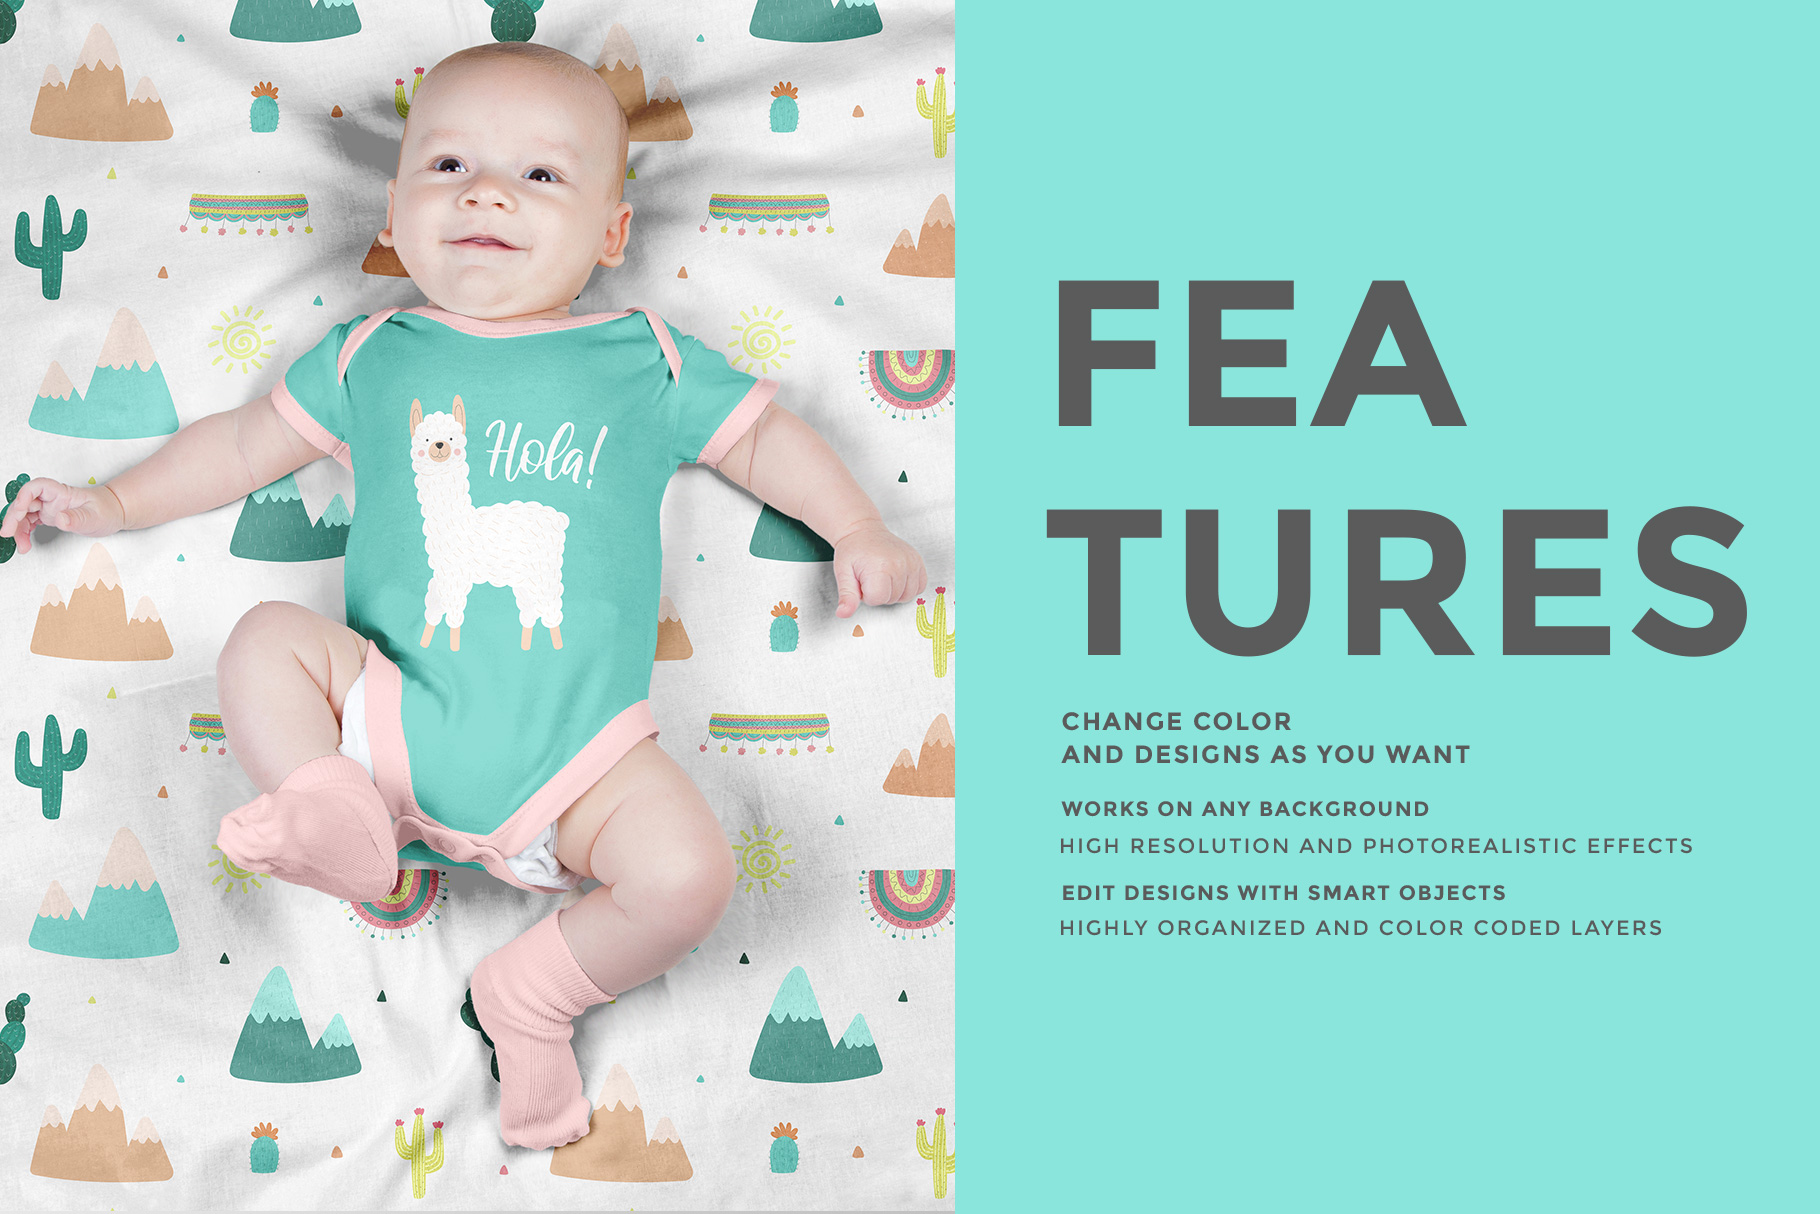 features of the top view newborn baby outfit mockup